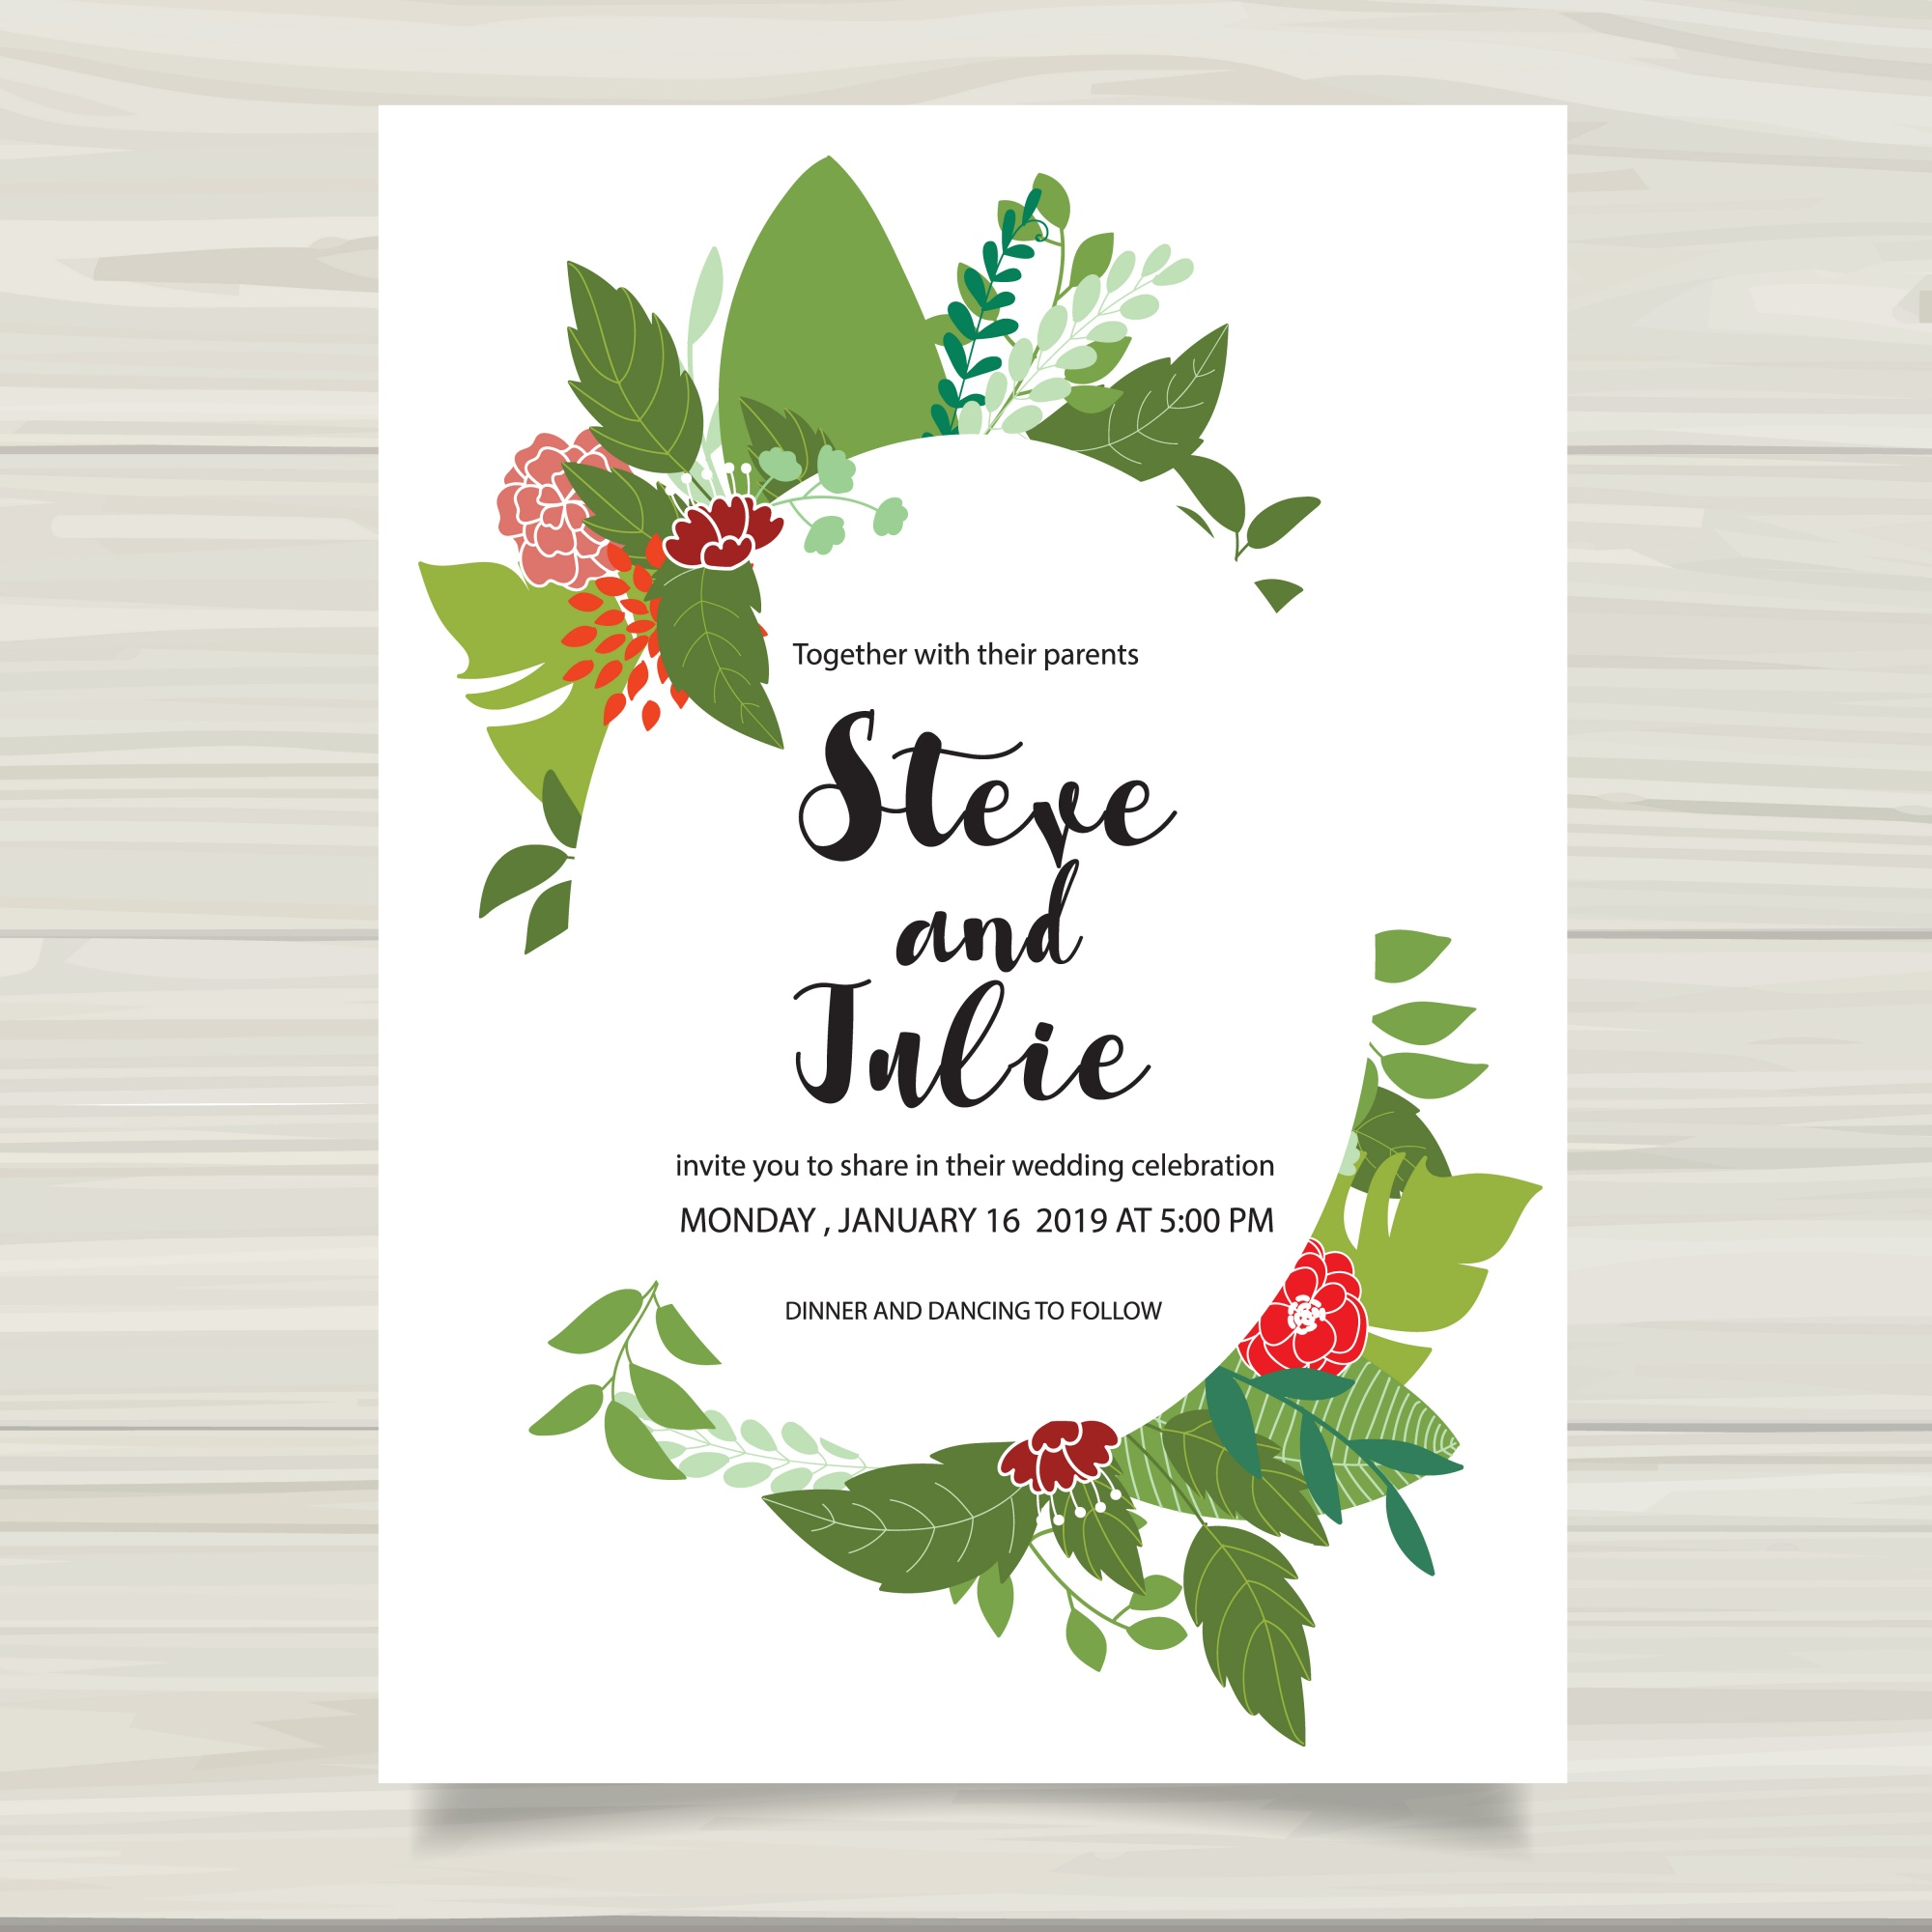 White wedding card with green leaves